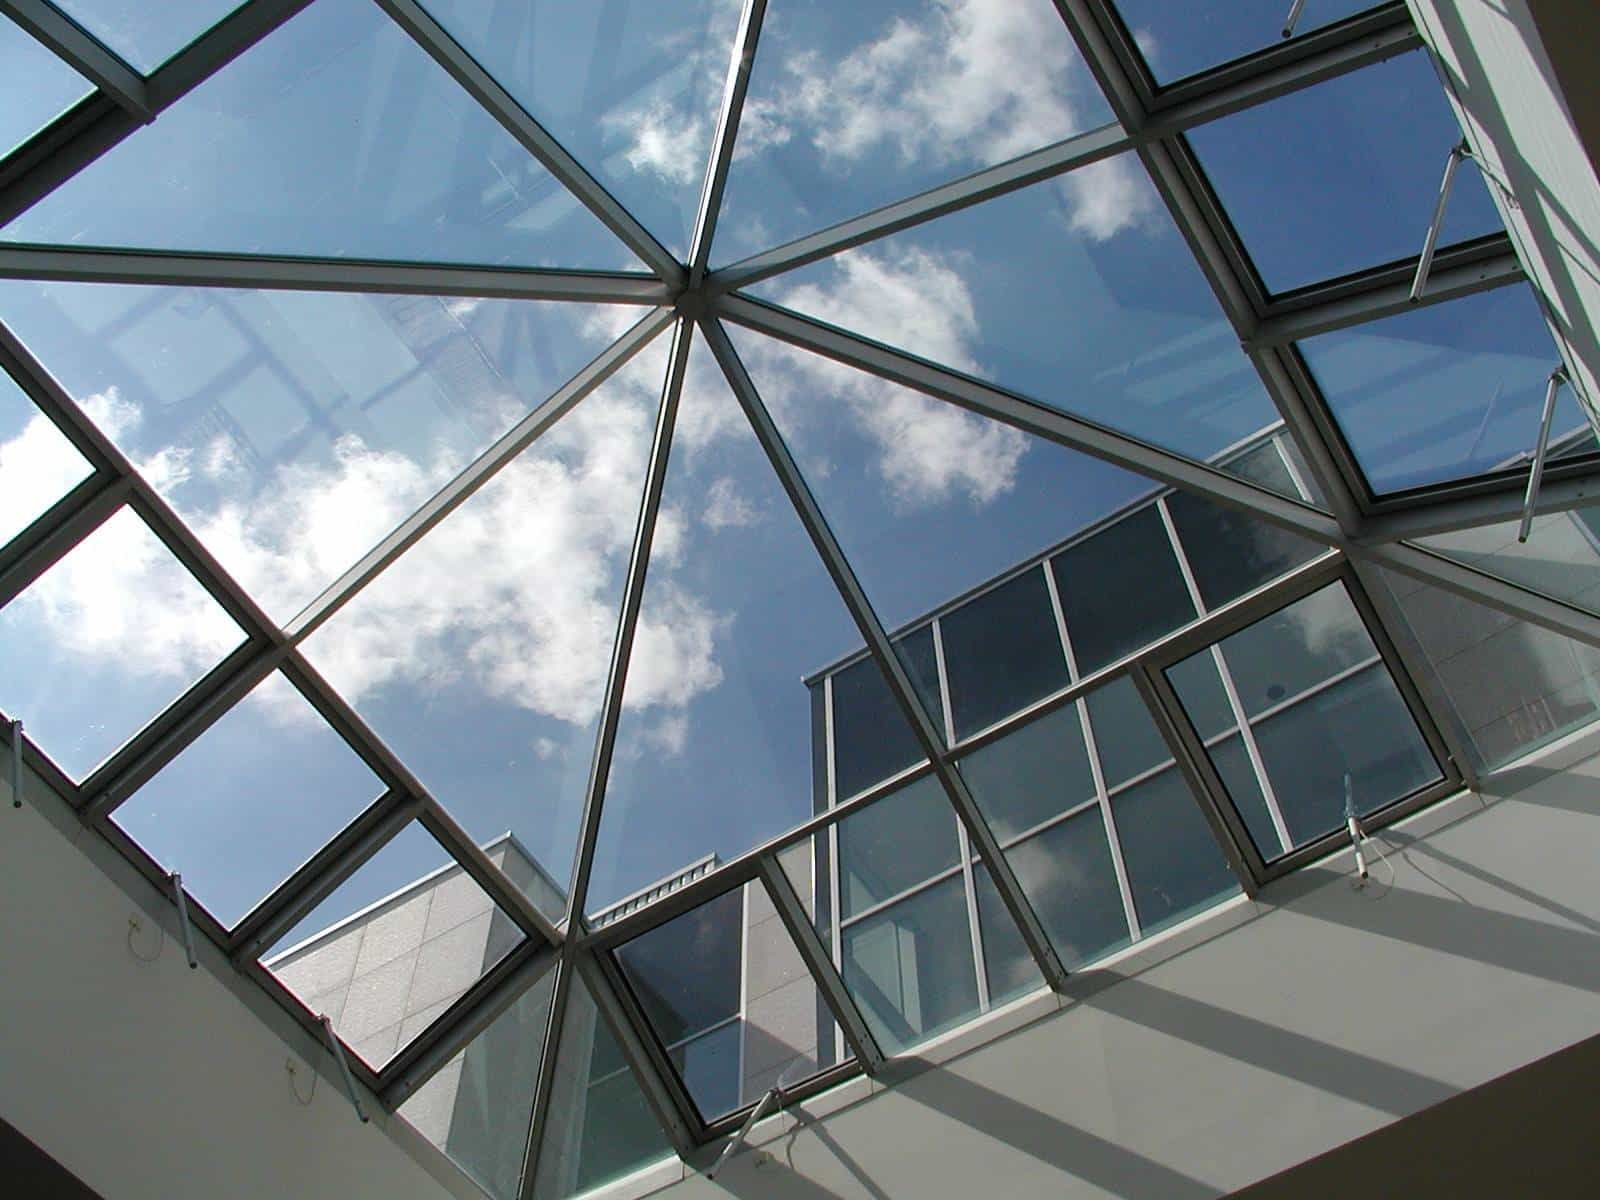 Roof Types With Images Skylight Design Skylight Glass Roof